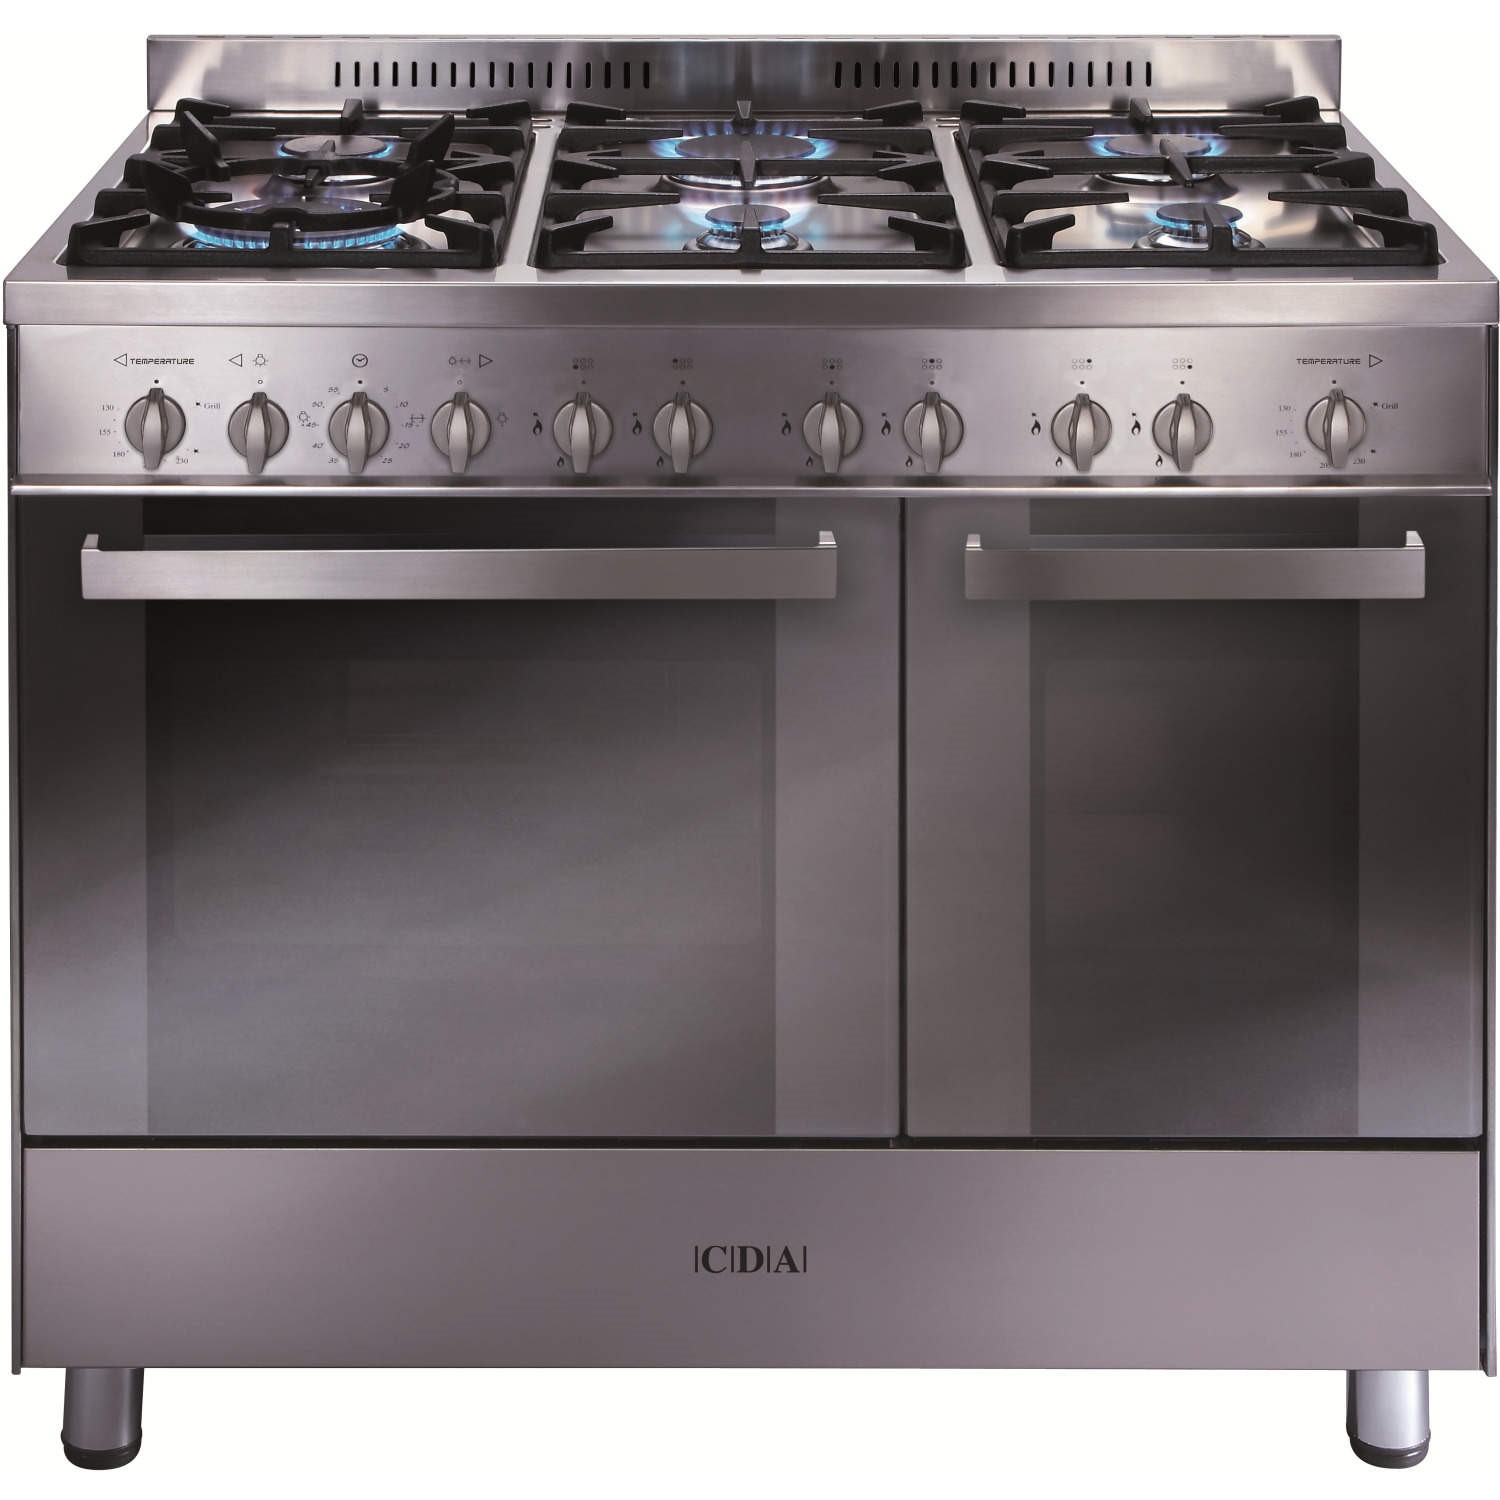 cda rc9322ss 90cm wide double oven gas range cooker stainless steel - Double Oven Gas Range